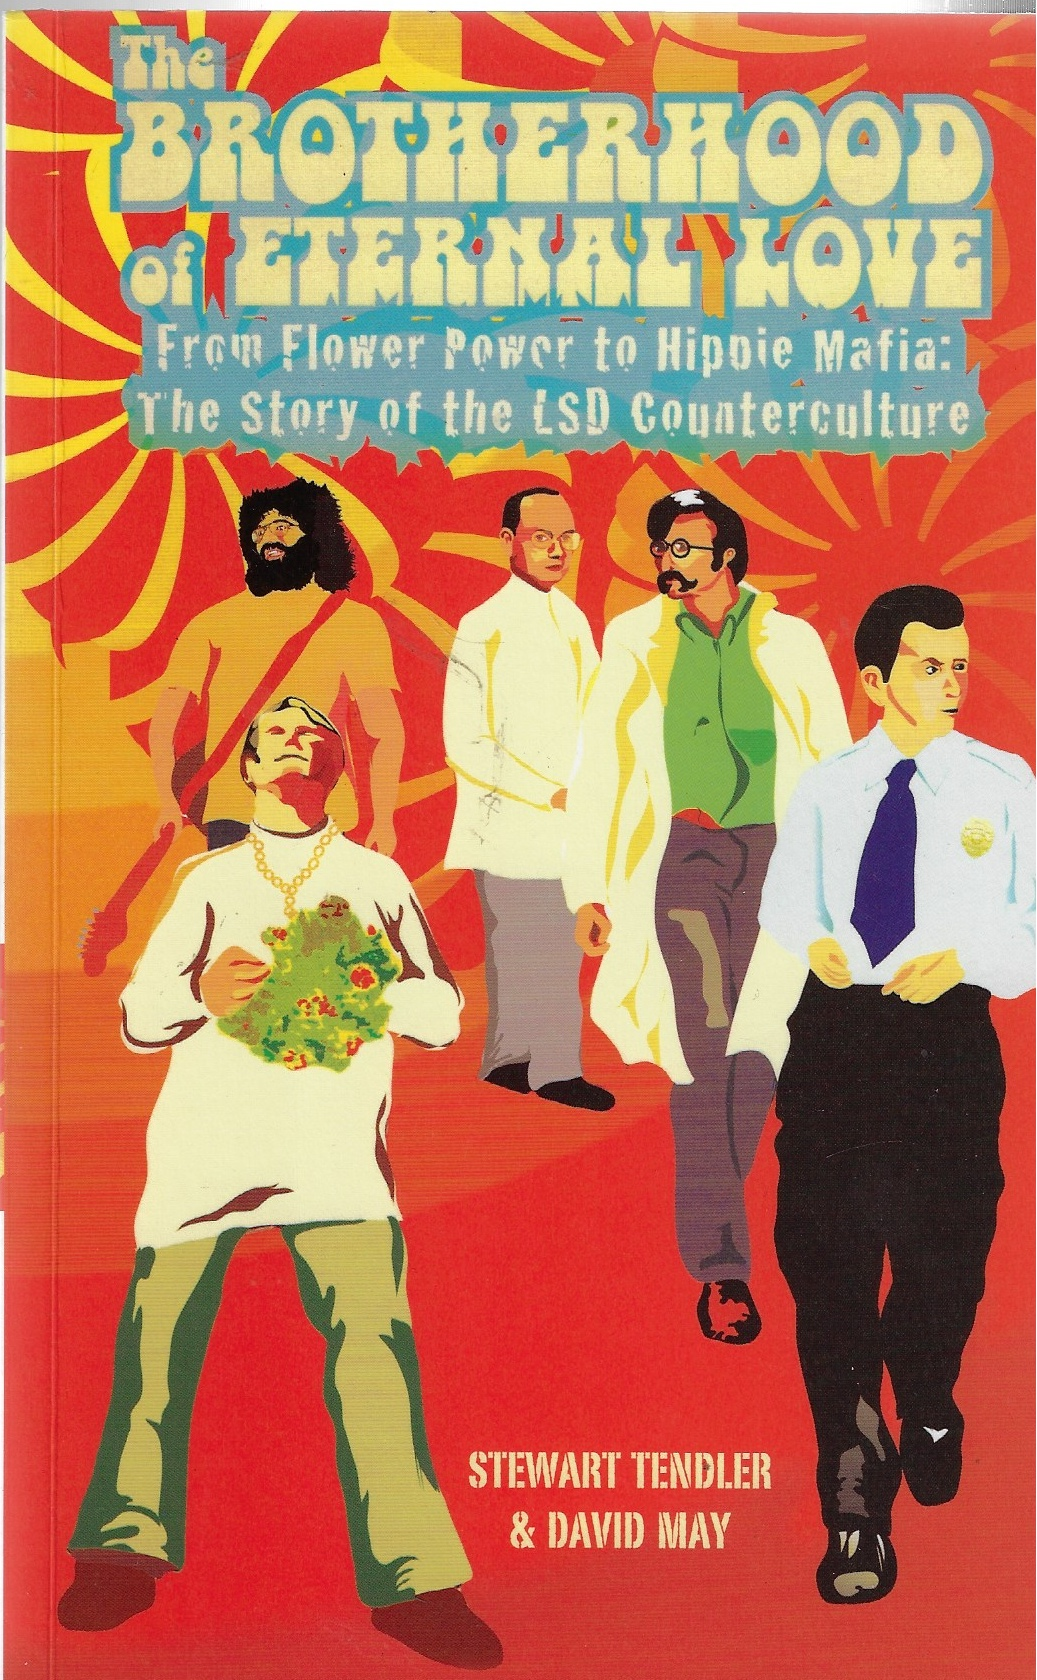 Image for The Brotherhood of Eternal Love From Flower Power to Hippie Mafia - the Story of the LSD Counterculture